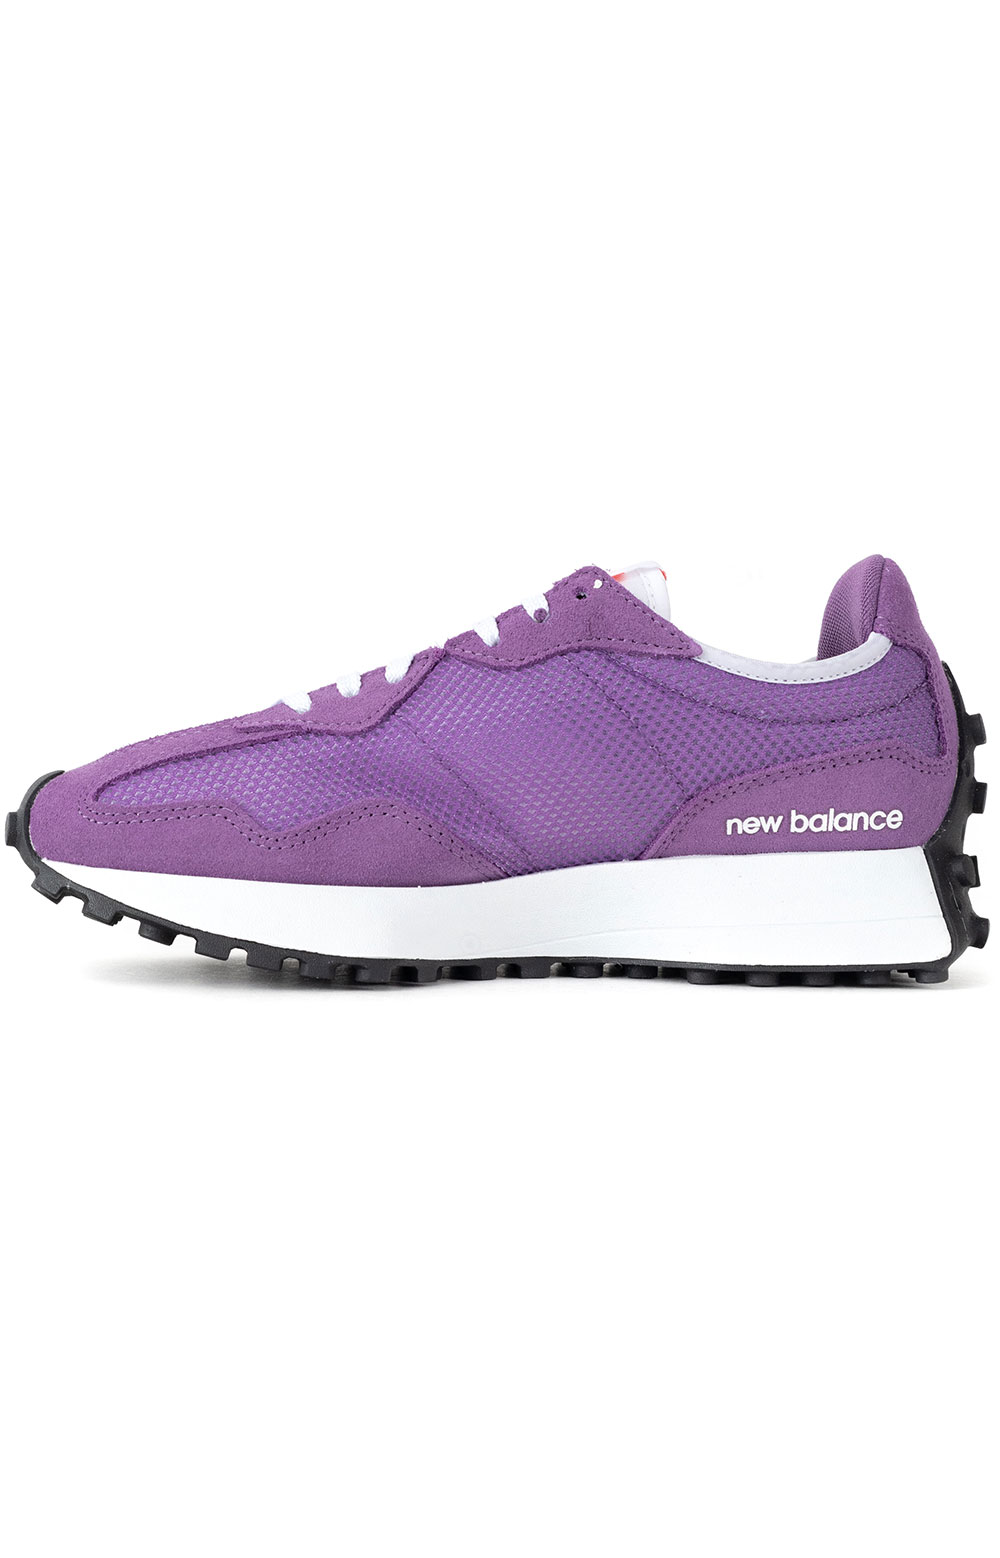 (WS327HE) 327 Shoes - Virtual Violet/Ghost Pepper  4